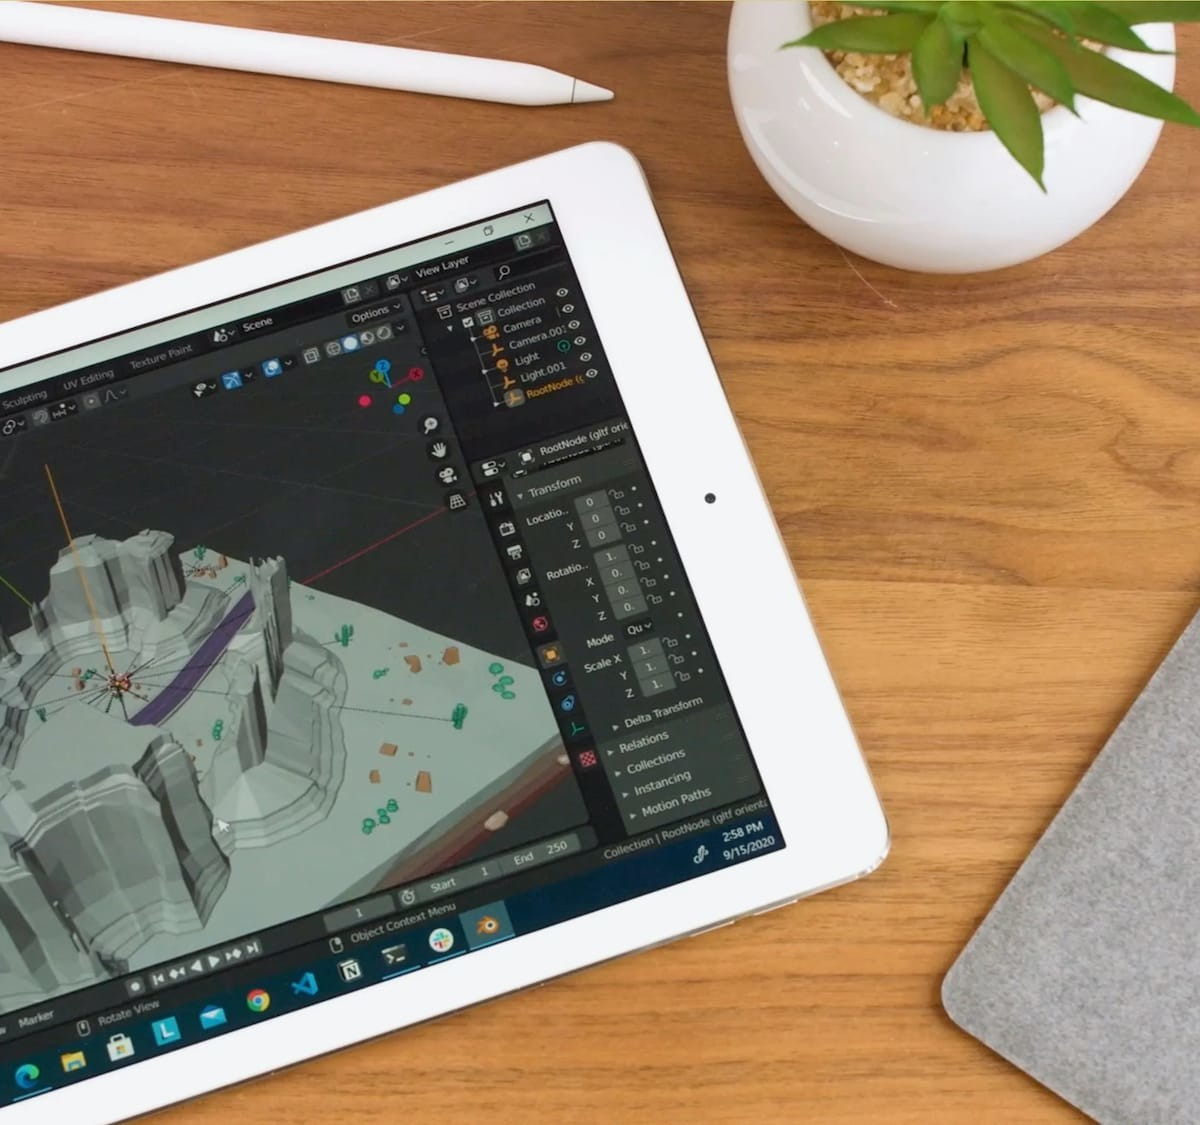 Astropad Luna Display for Windows turns your iPad into a wireless PC screen